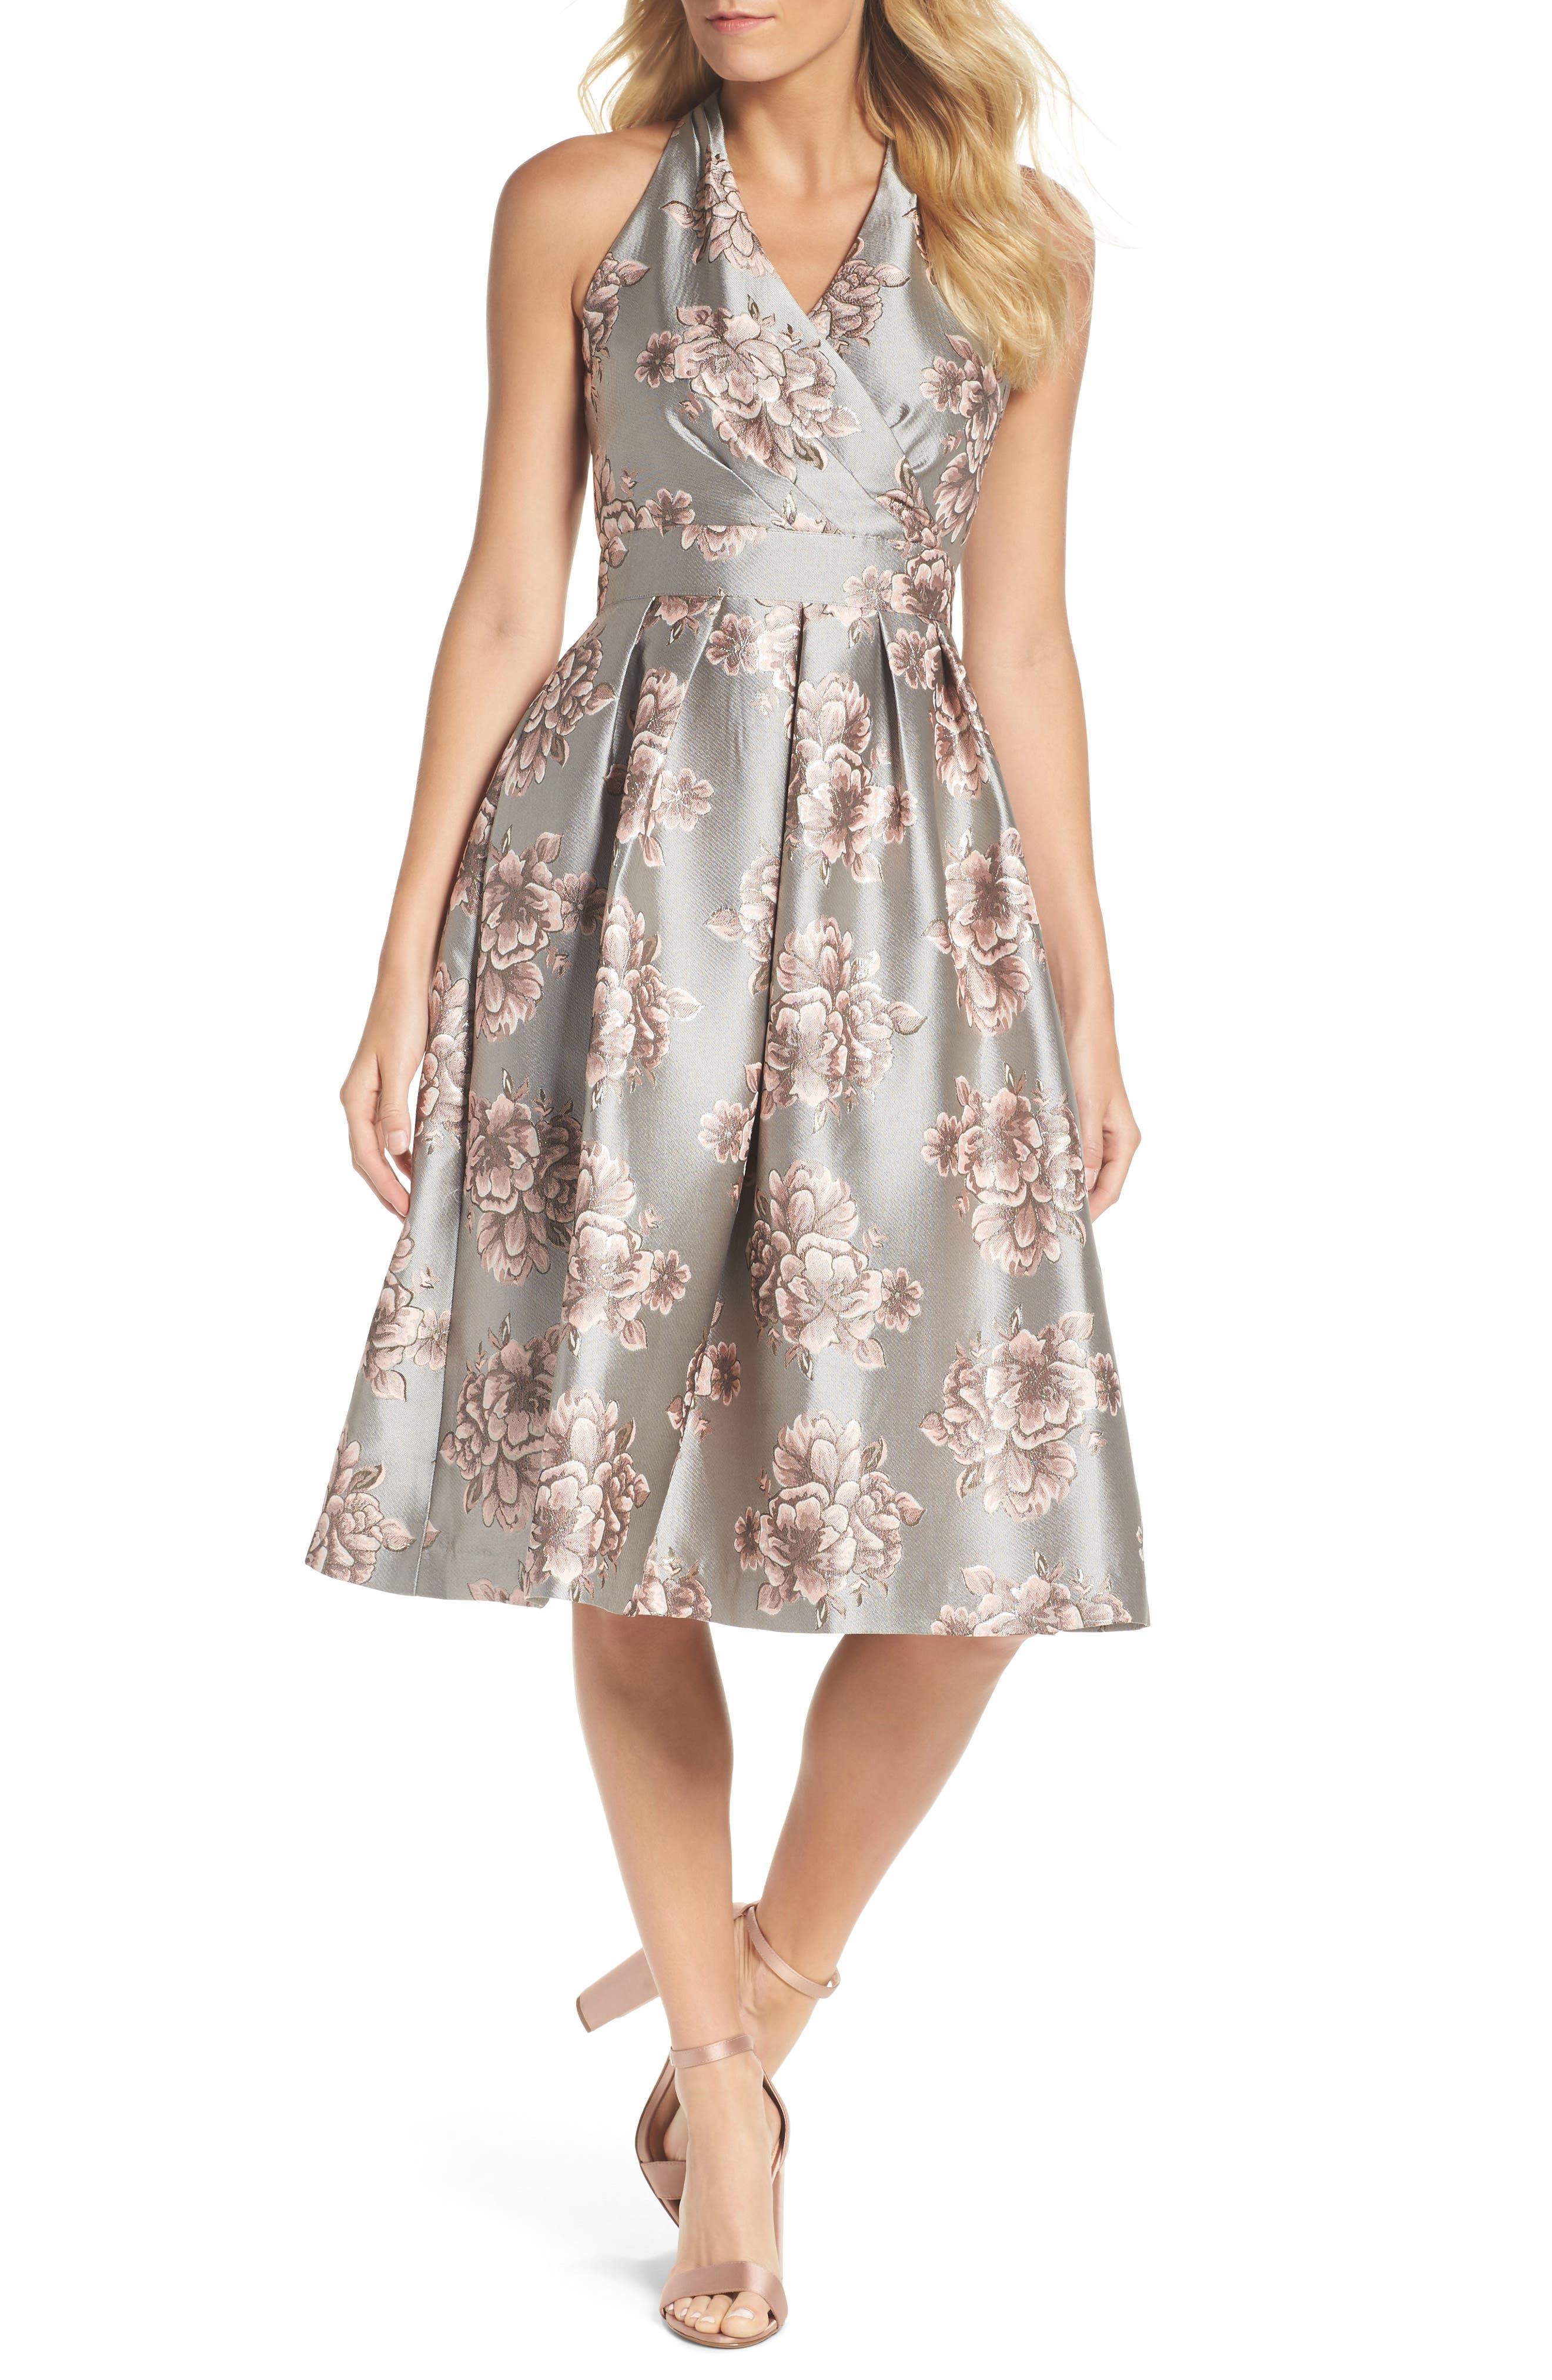 Chetta B Metallic Floral Fit & Flare Dress